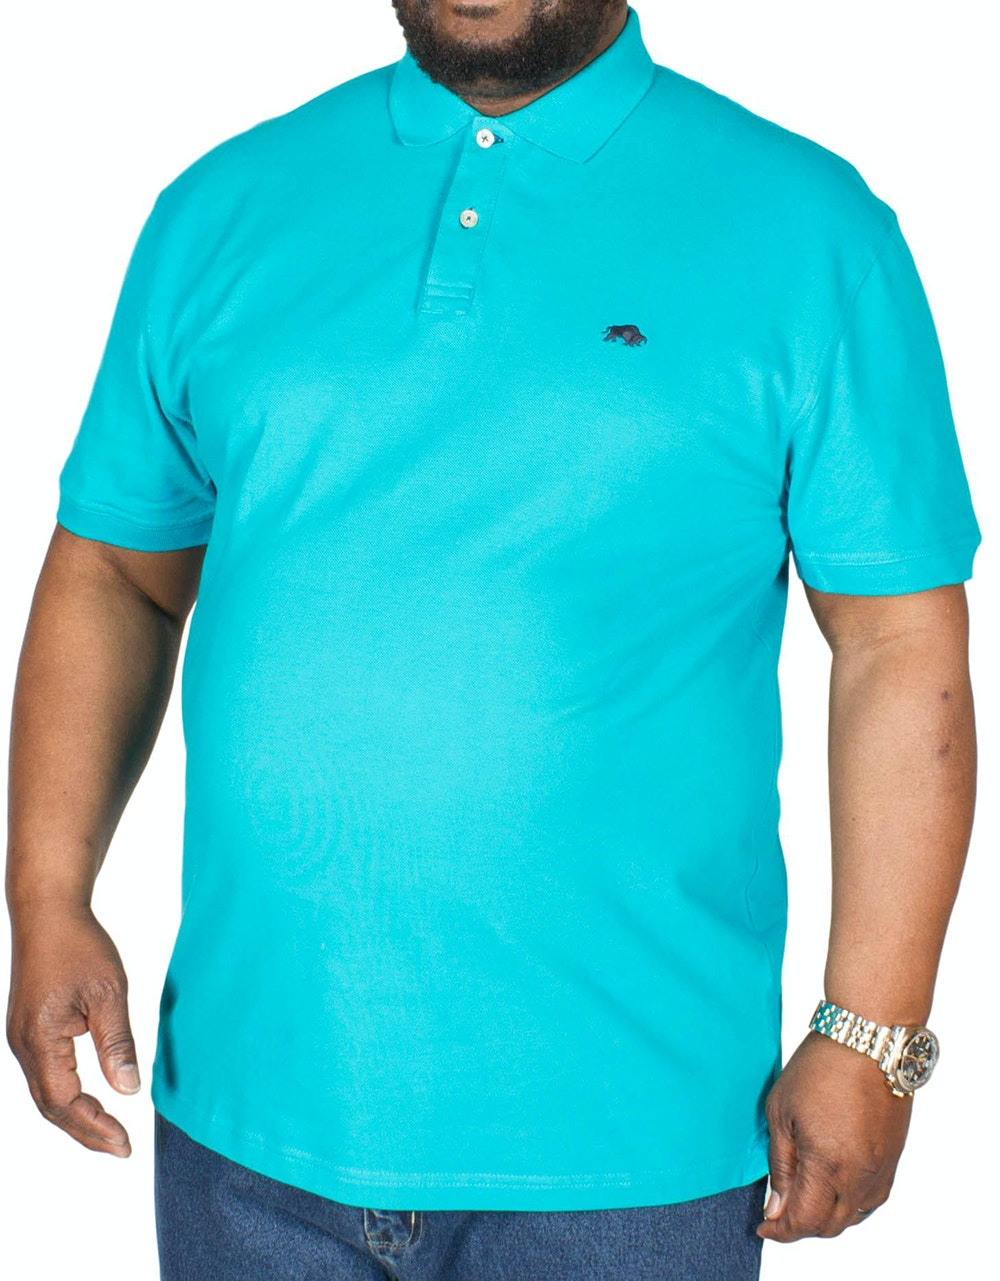 Raging Bull Signature Polo Shirt Teal